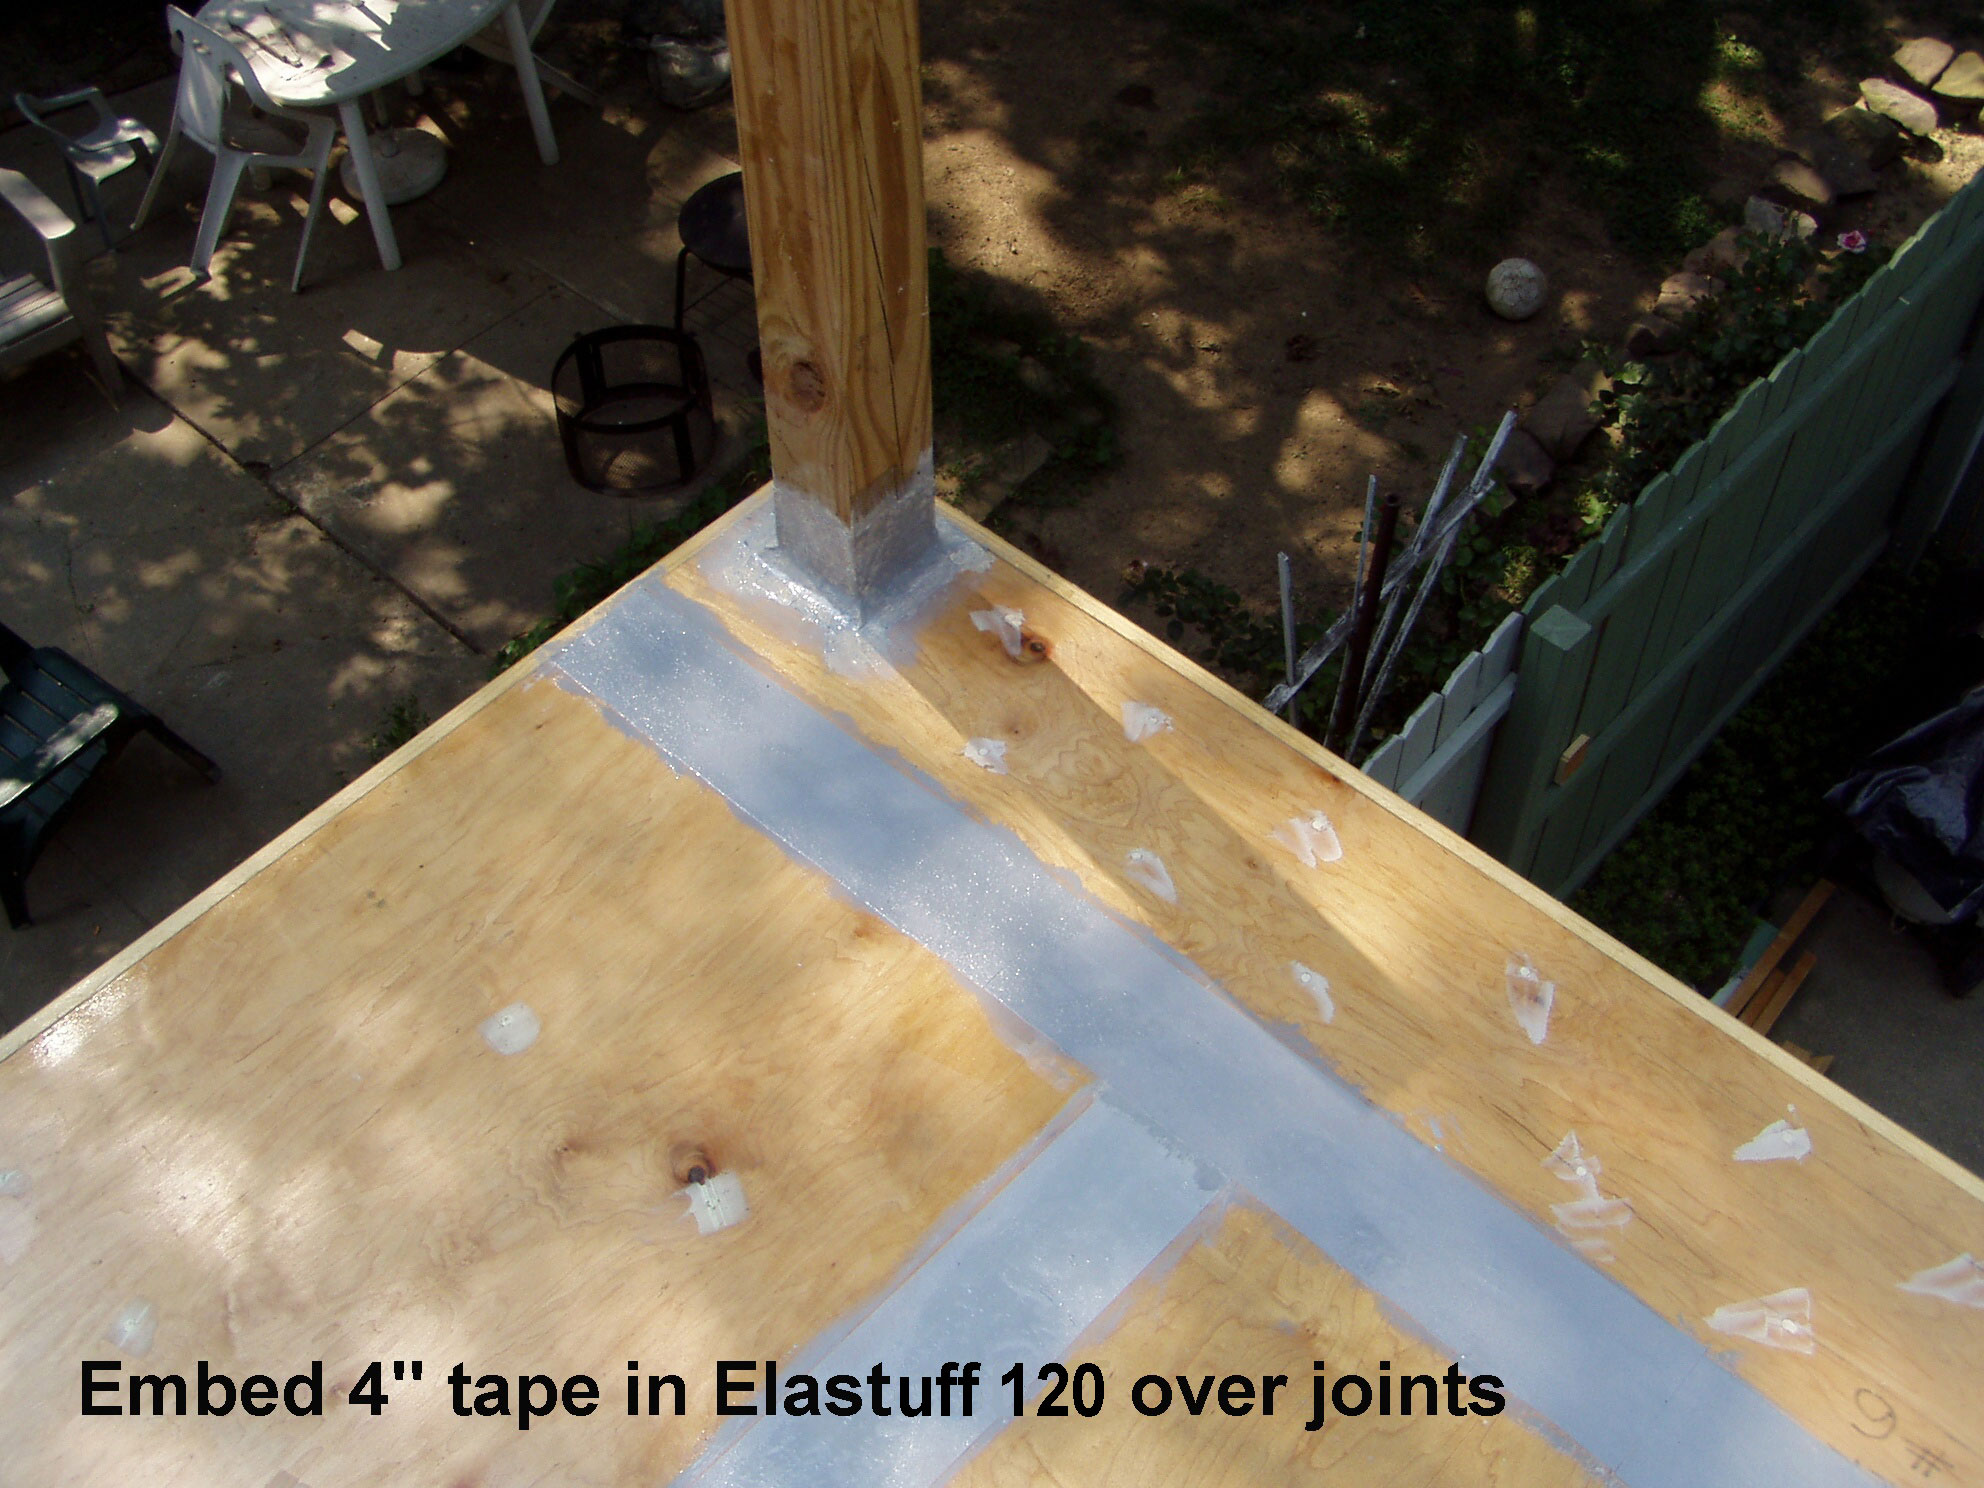 4 inch tape embeded in Elastuff 120 at joints